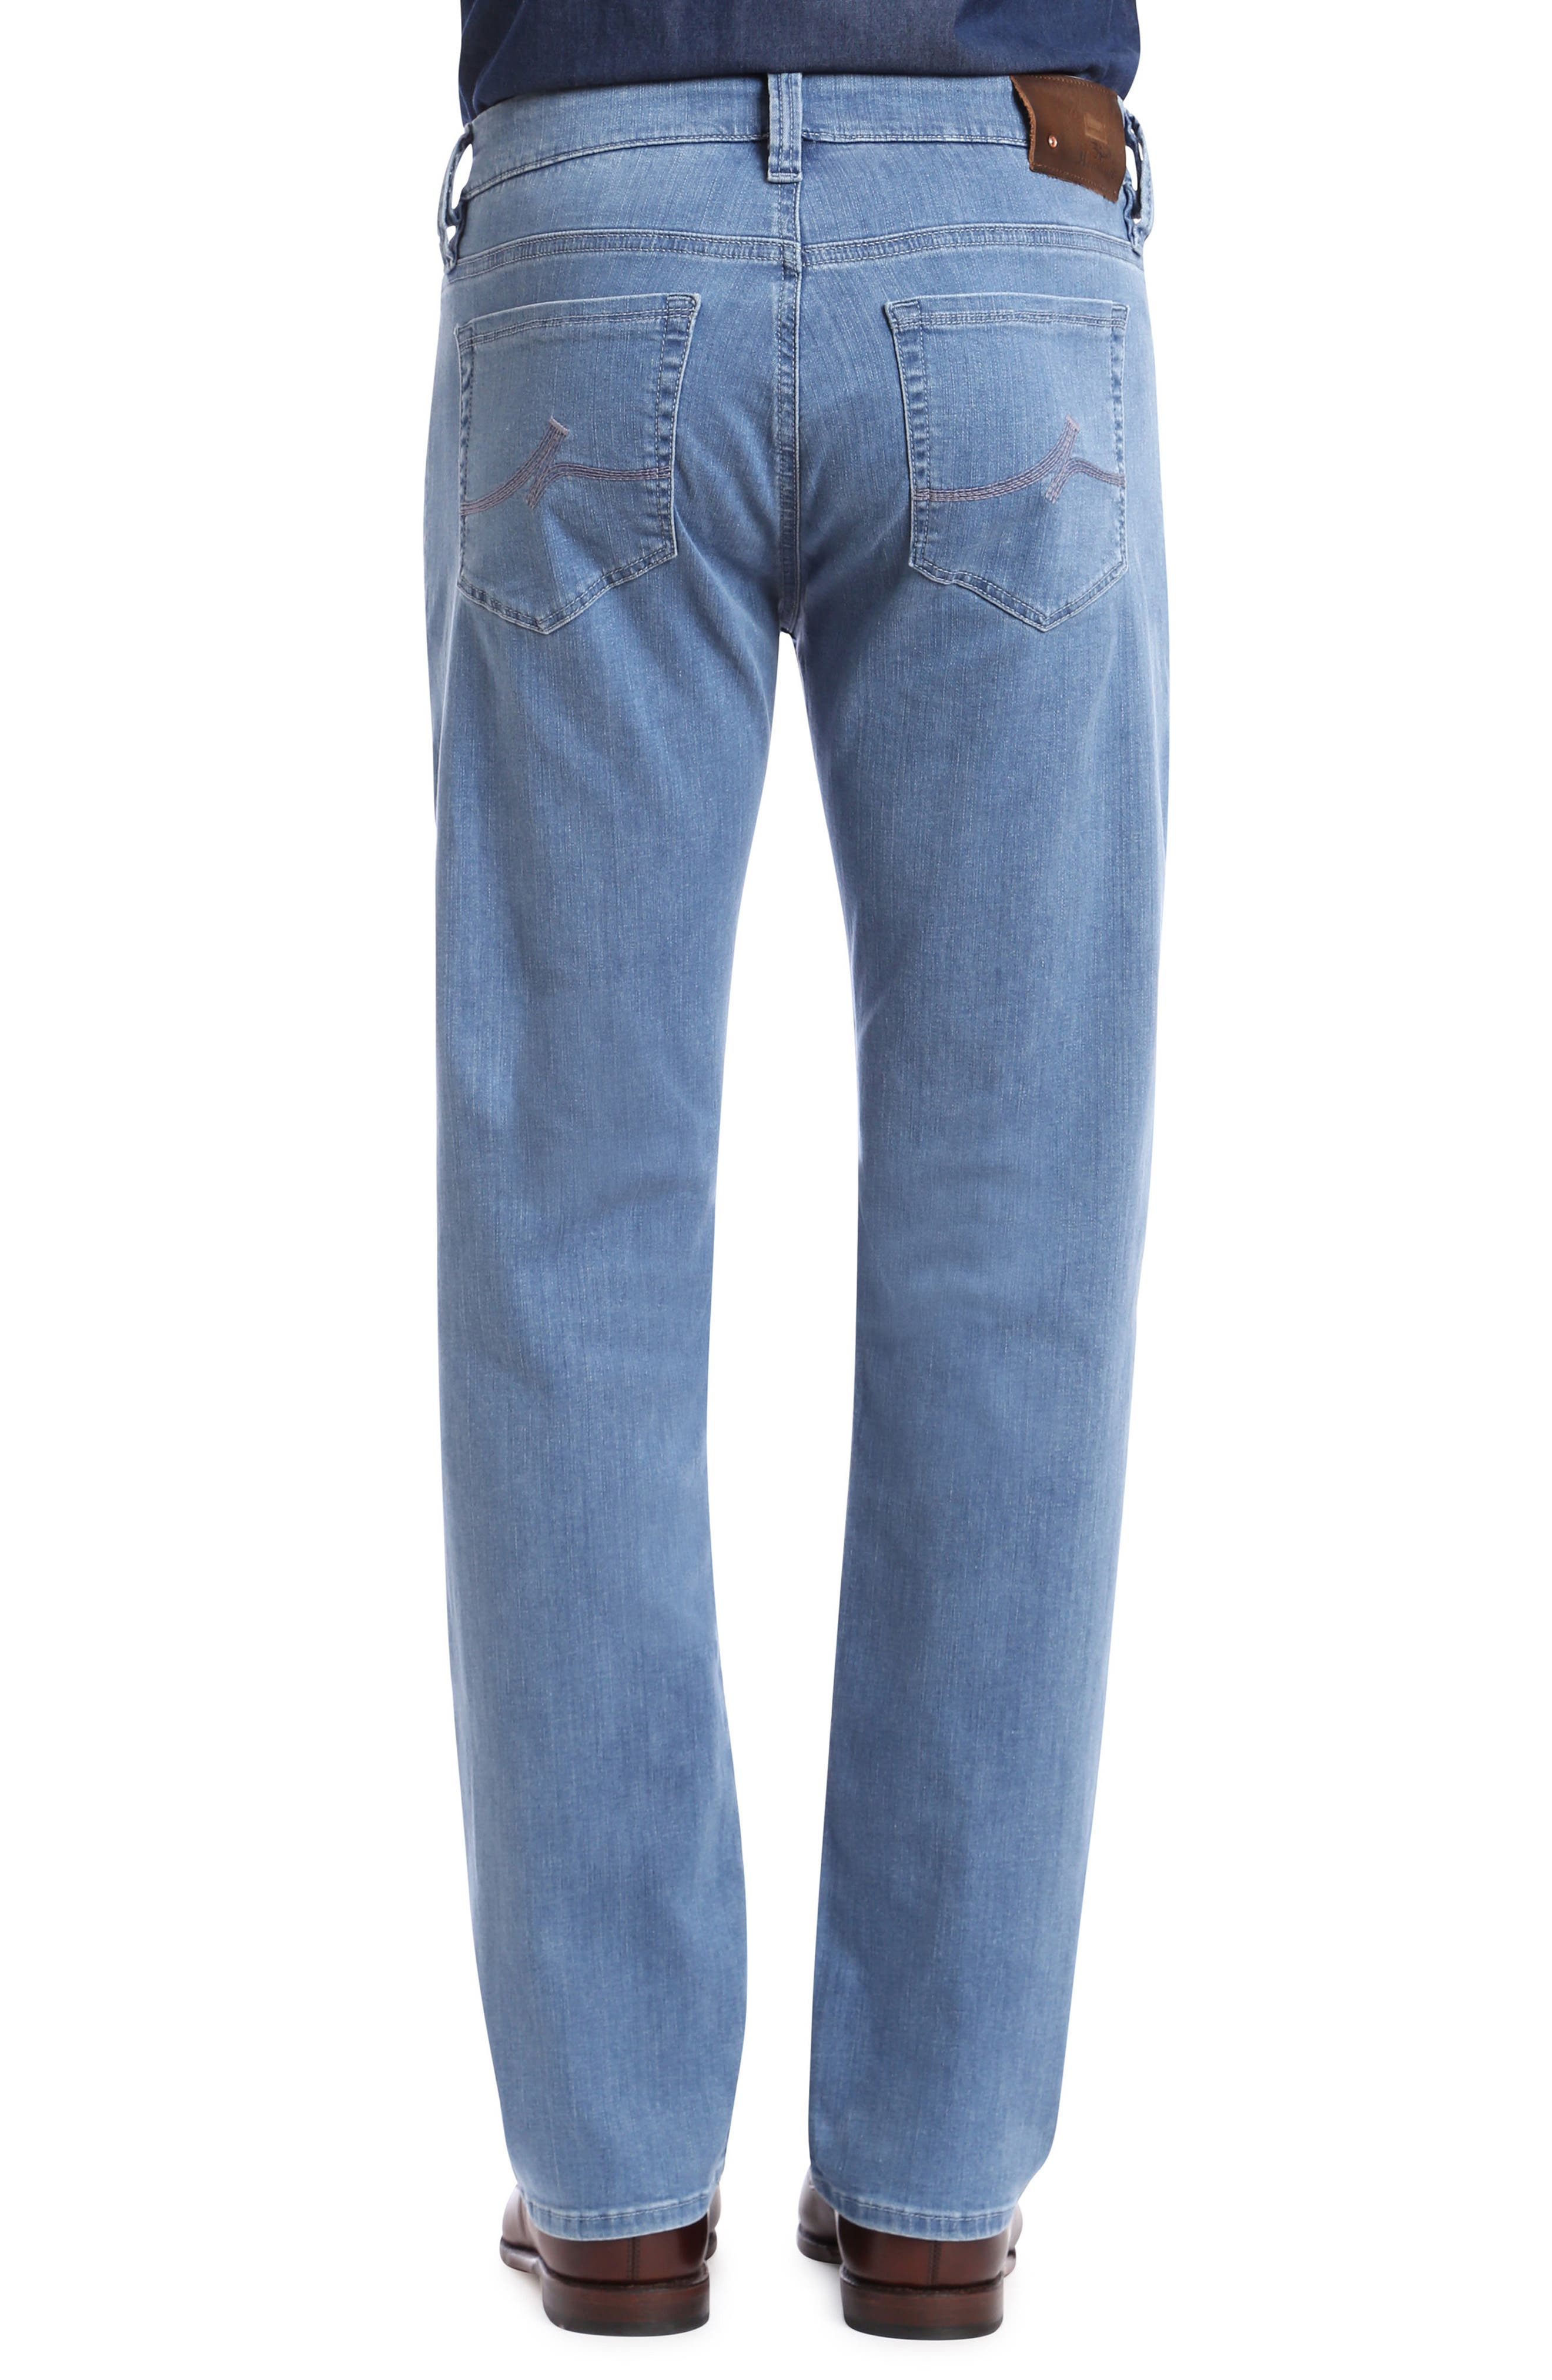 Charisma Relaxed Fit jeans,                             Alternate thumbnail 2, color,                             420